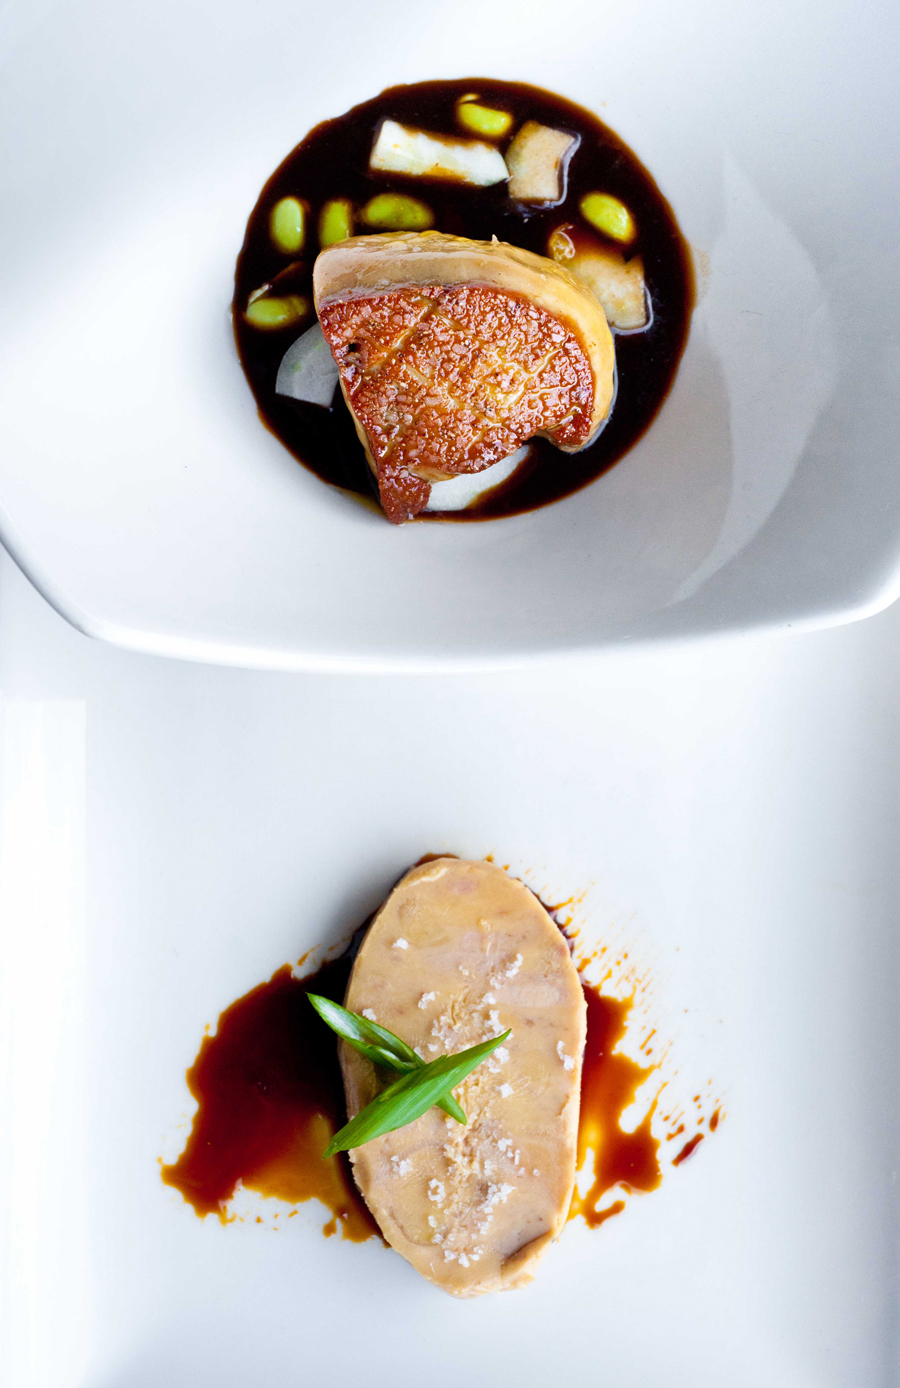 Duo of foie gras with ponzu and edamame